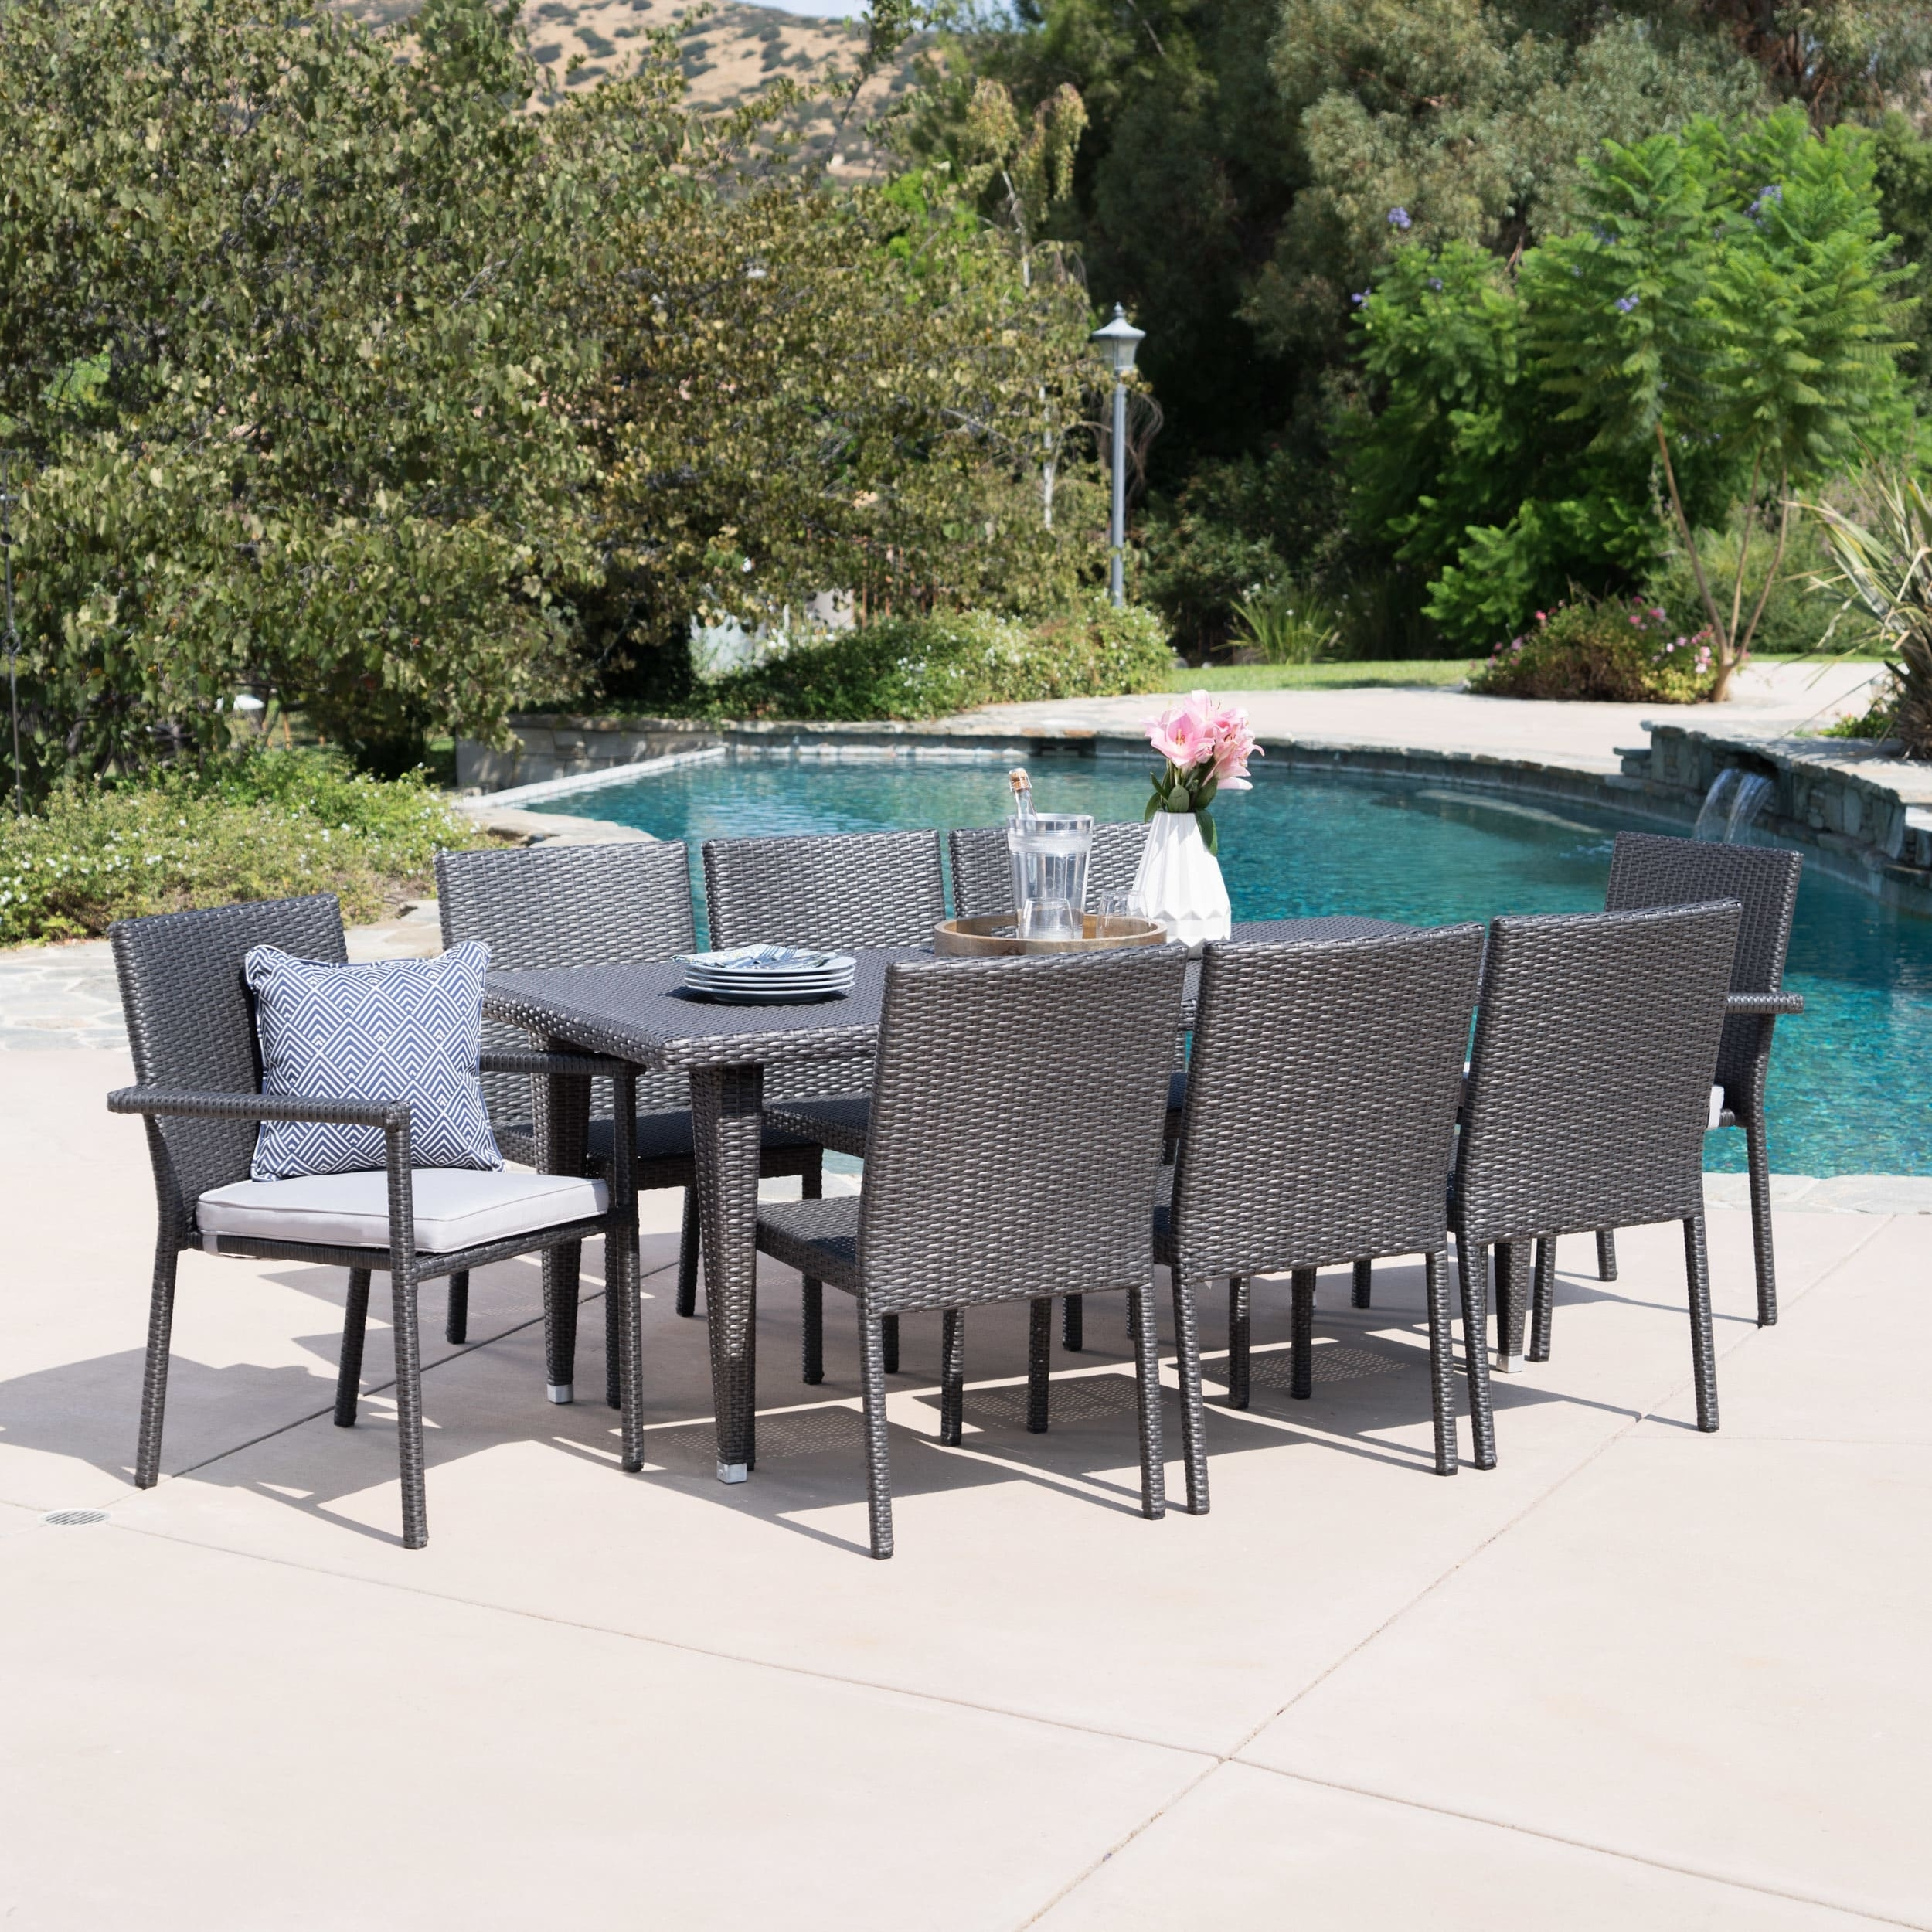 Christopher Knight Home Grady Outdoor 9 Piece Rectangular Wicker Regarding Most Recent Grady Round Dining Tables (View 19 of 20)